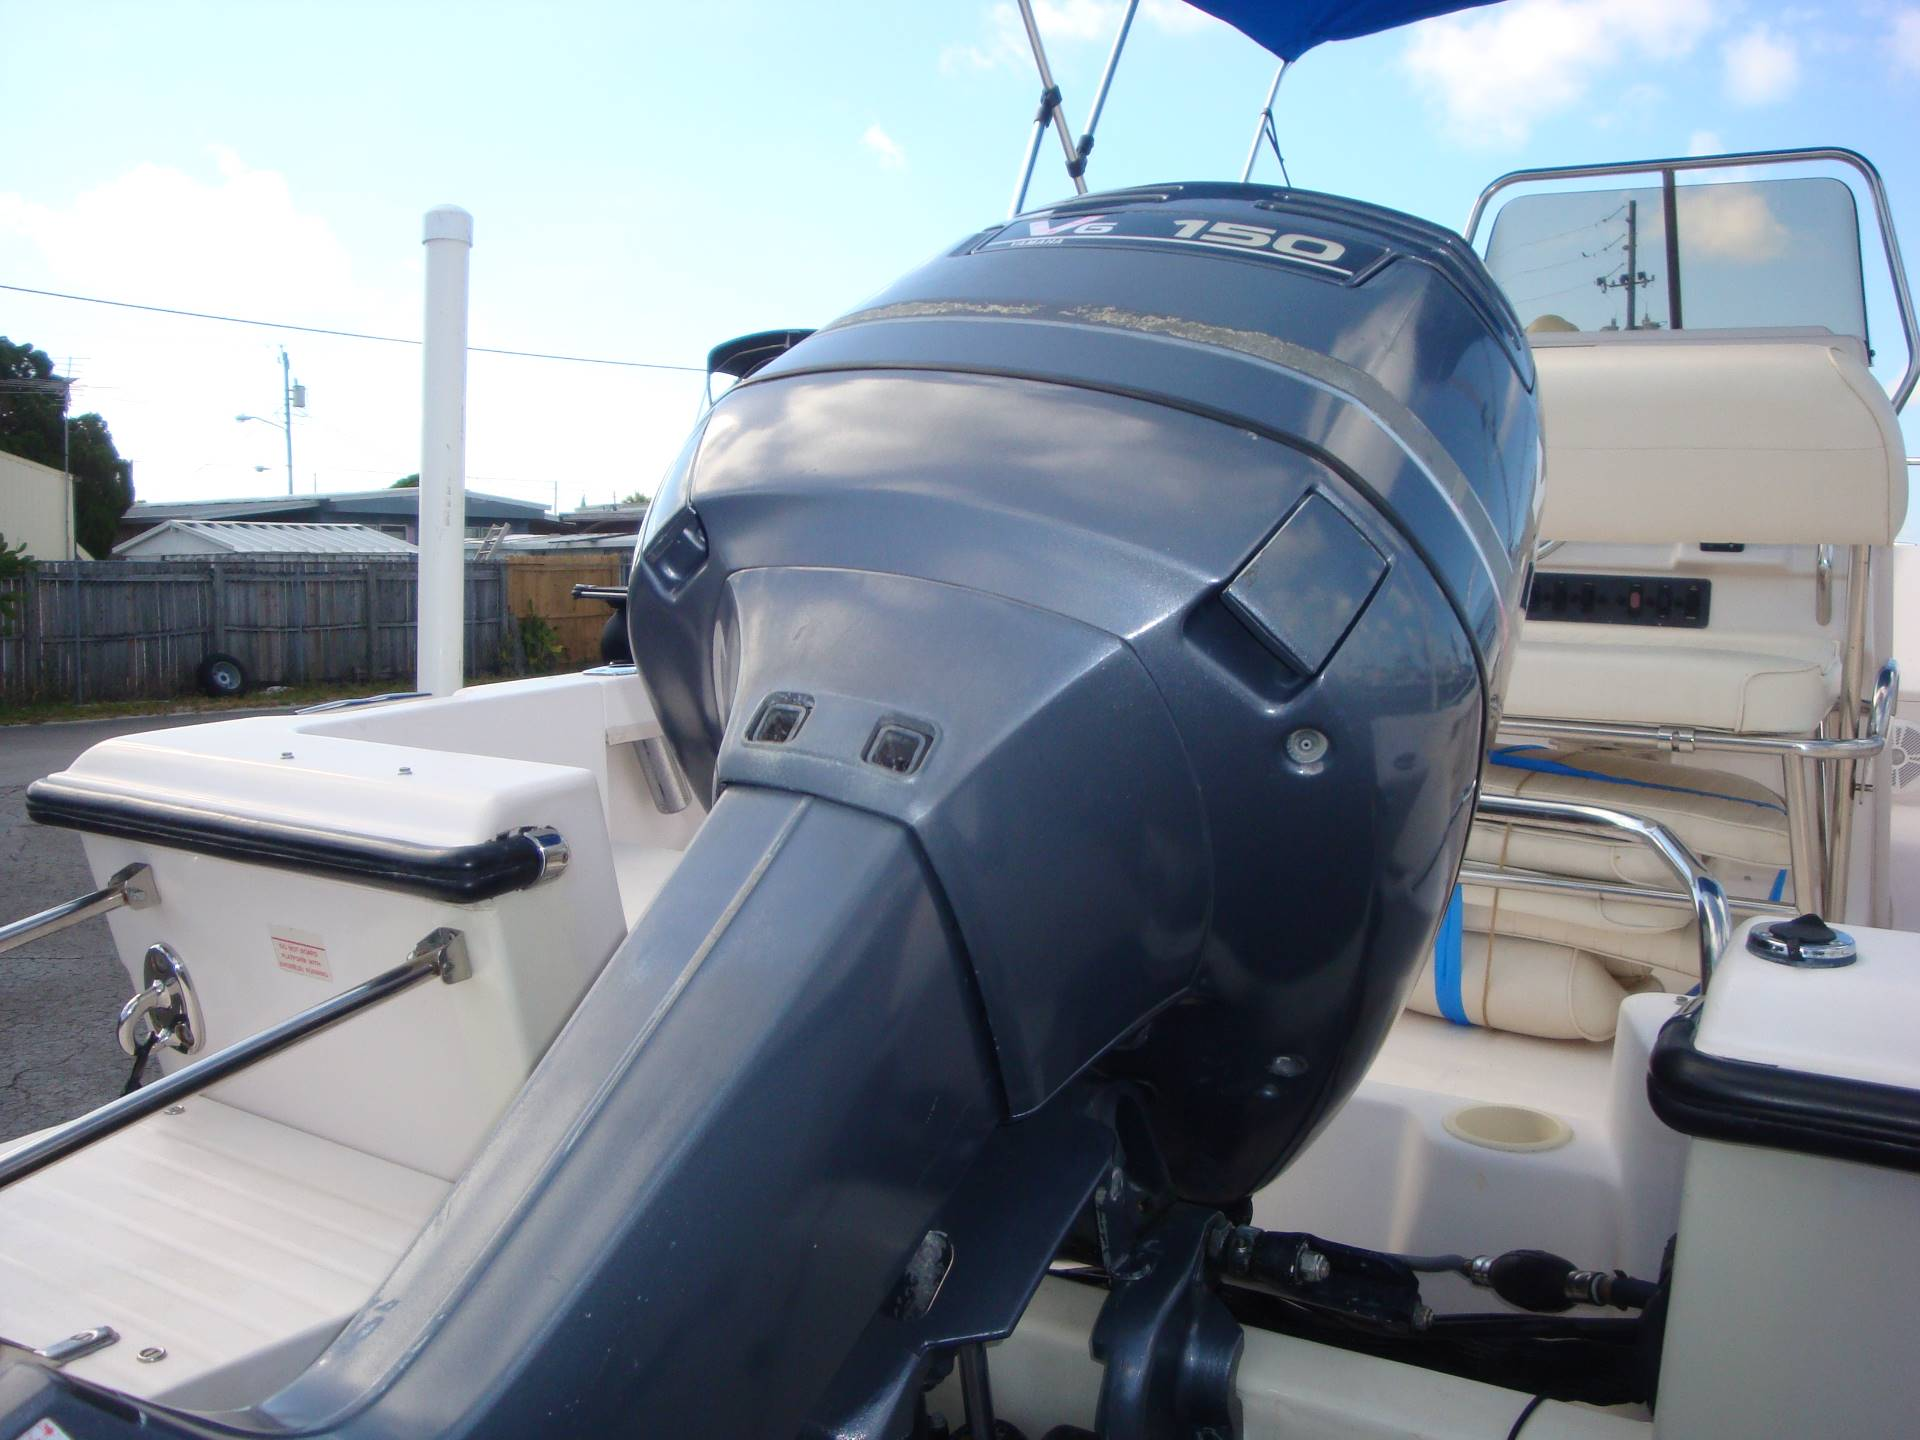 2000 Grady-White Sportsman 180 in Holiday, Florida - Photo 19